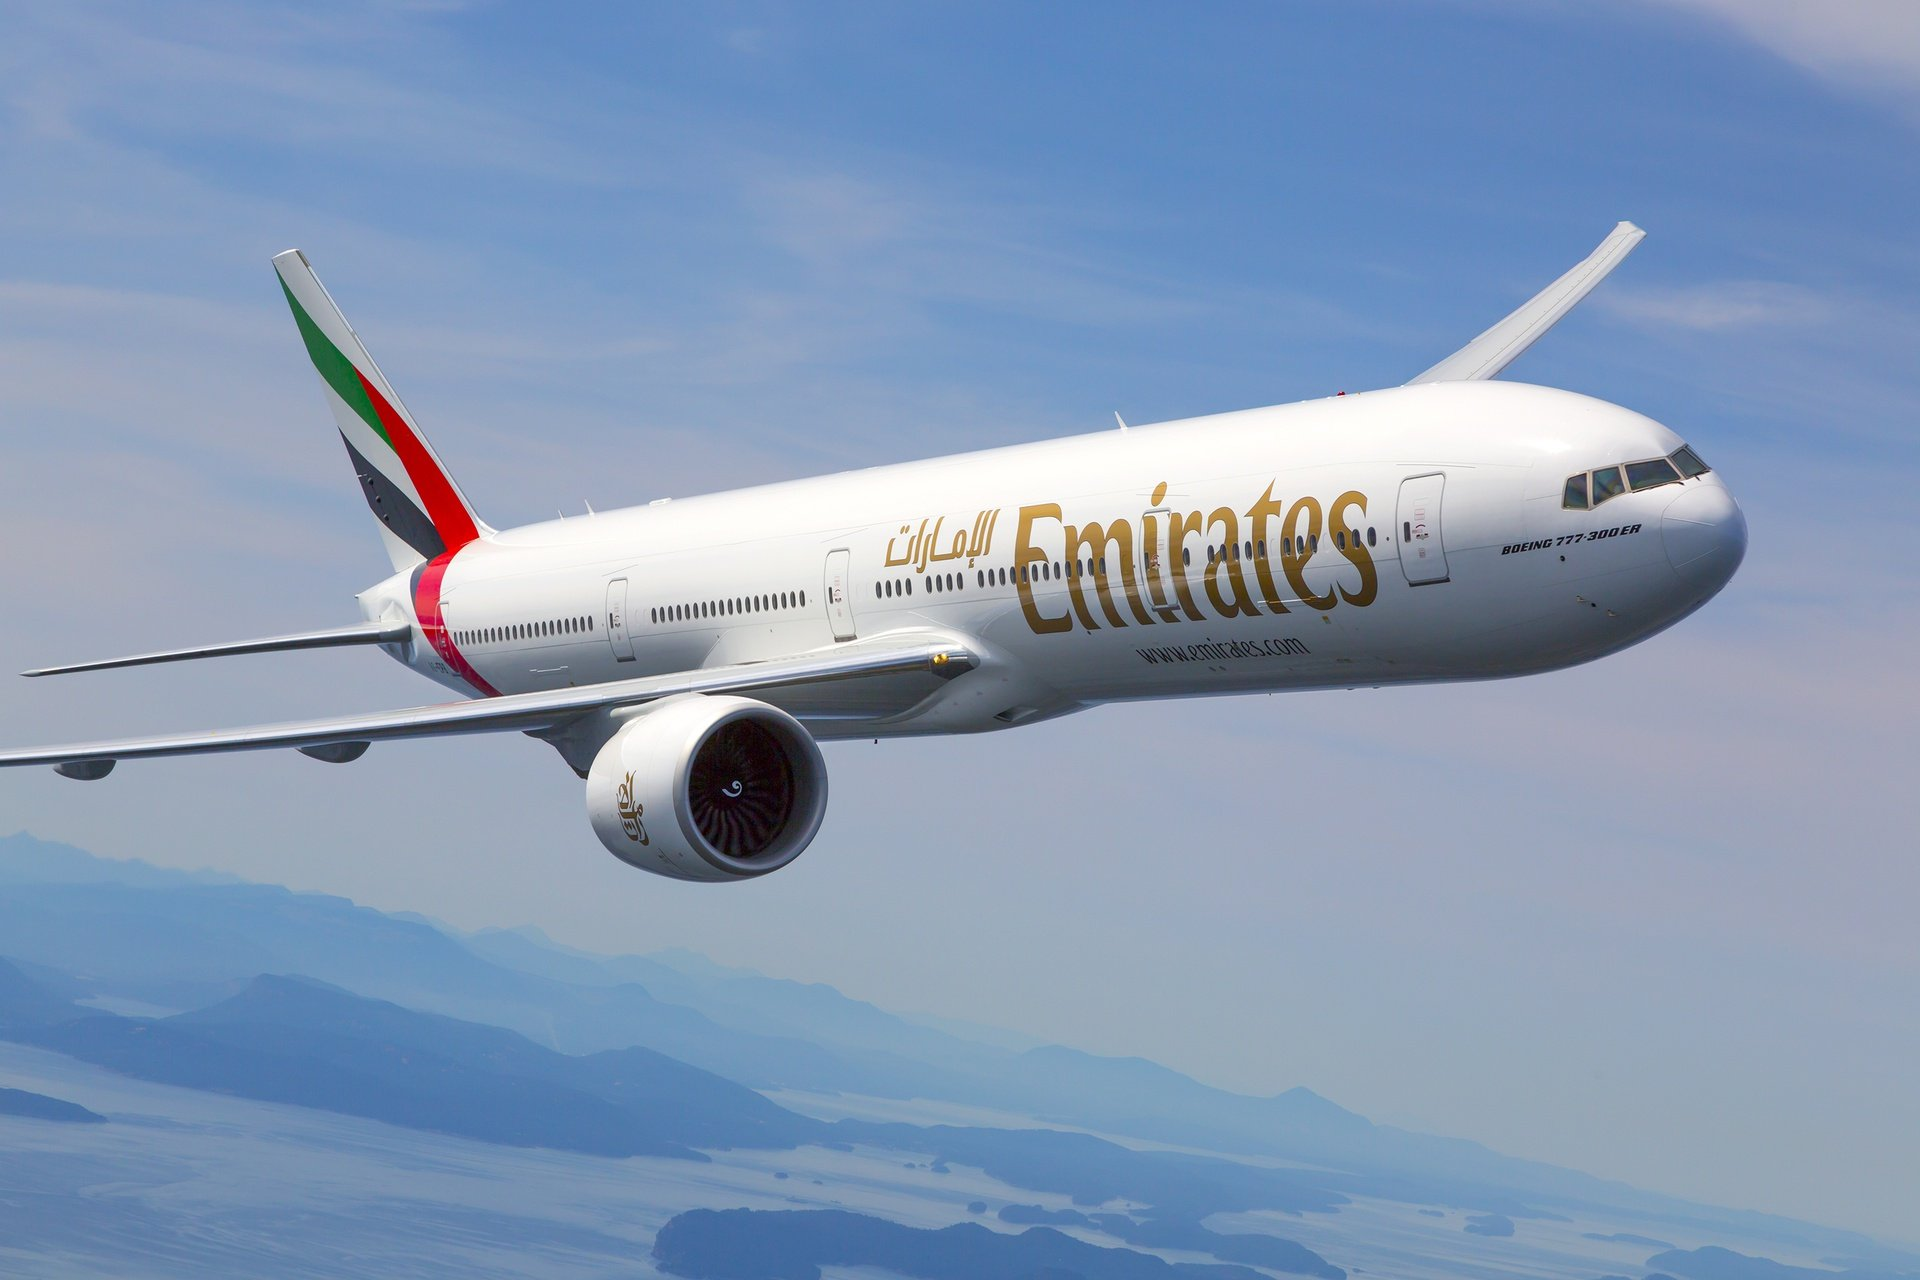 Emirates resumes flights to Johannesburg, Cape Town, Durban, Harare and Mauritius